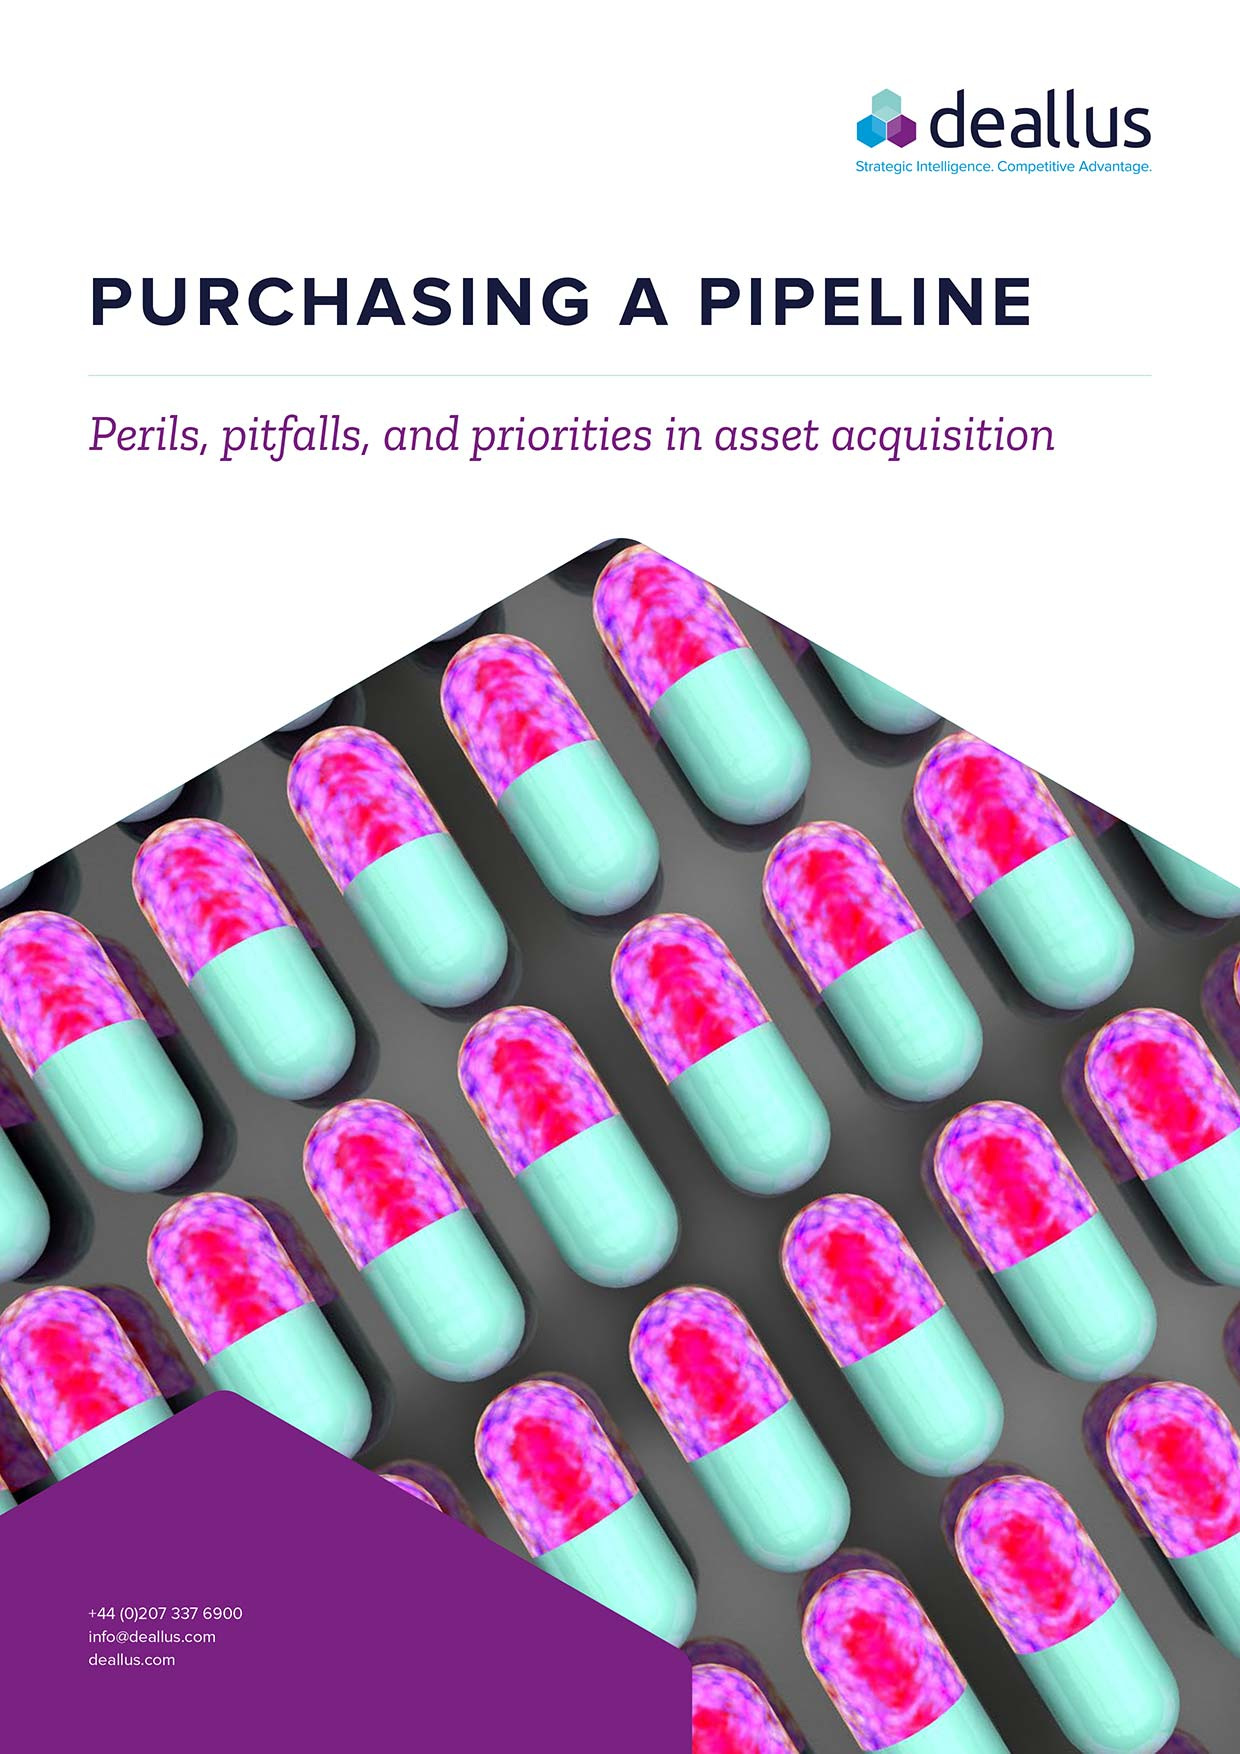 Deallus Purchasing a Pipeline White Paper